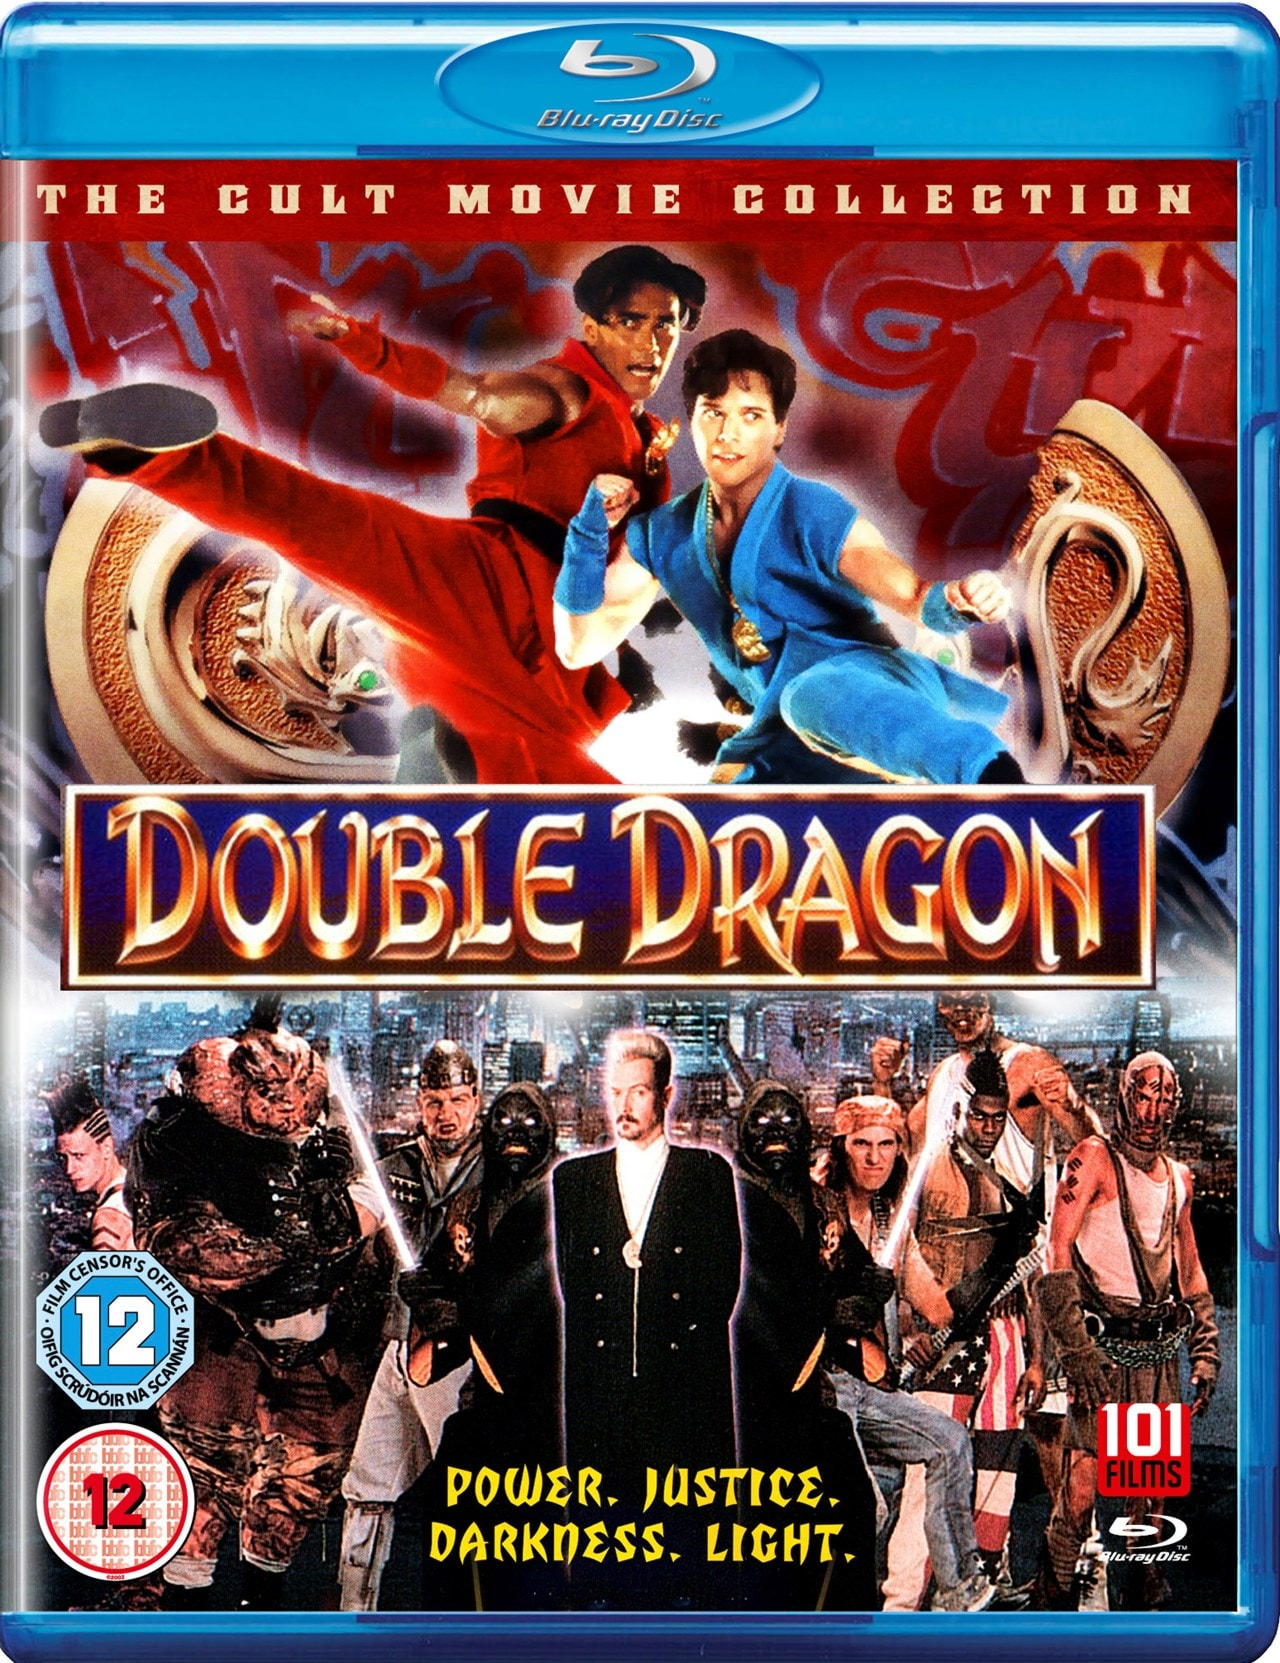 Double Dragon Blu Ray Free Shipping Over 20 Hmv Store